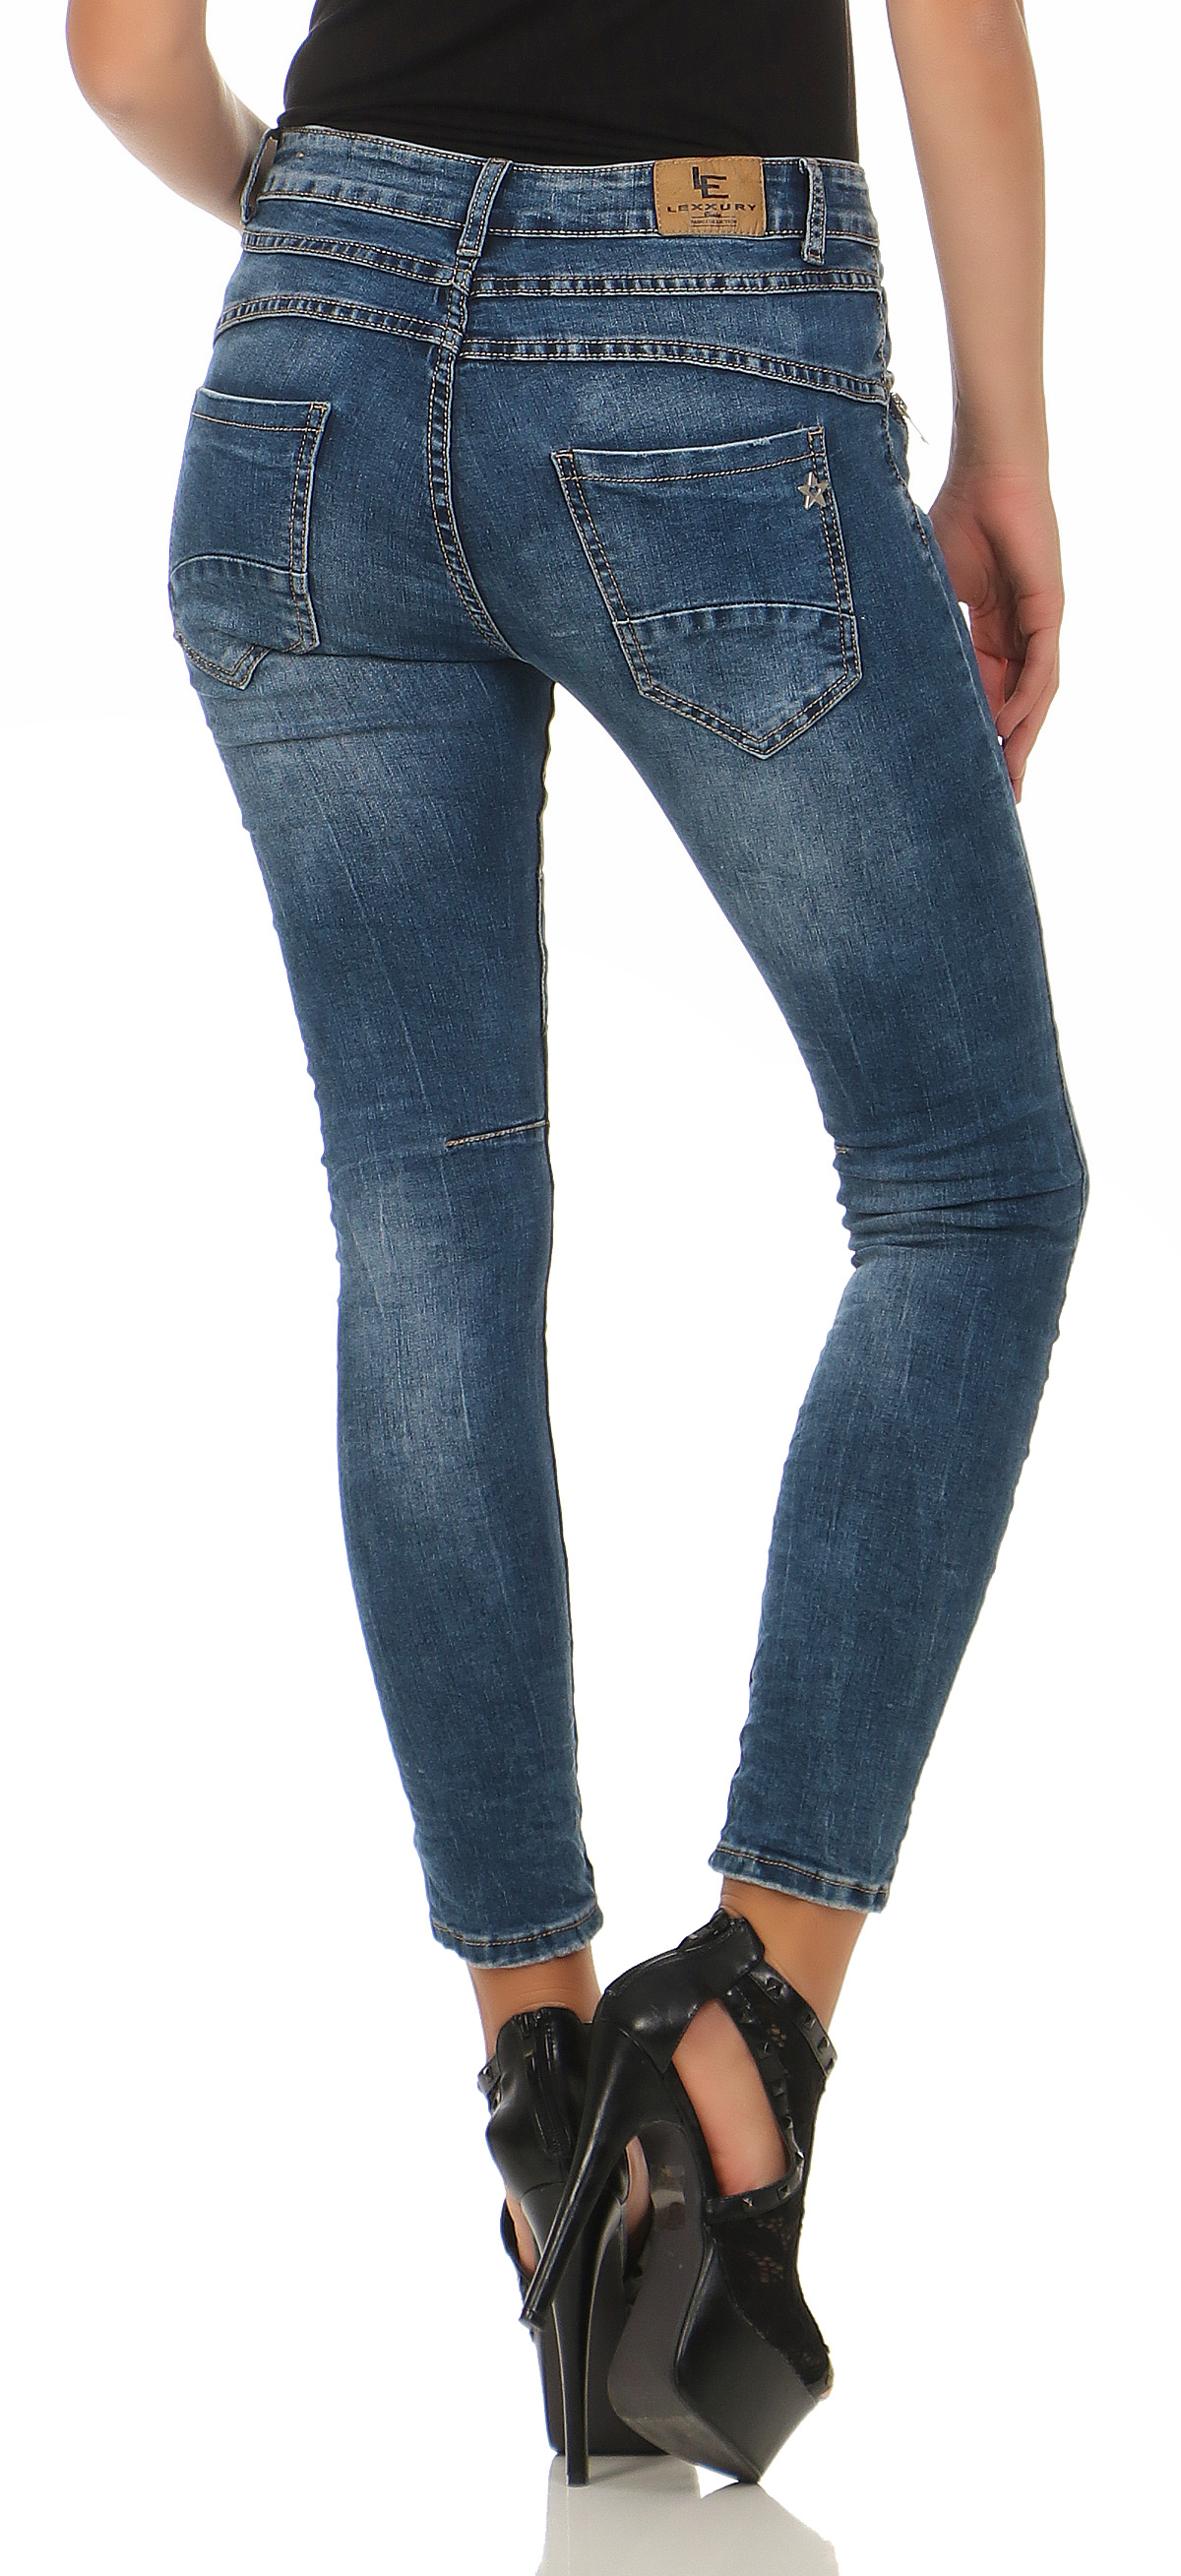 lexxury baggy damen jeans hose chino pants kn pfe boyfriend skinny cl 7192 ebay. Black Bedroom Furniture Sets. Home Design Ideas